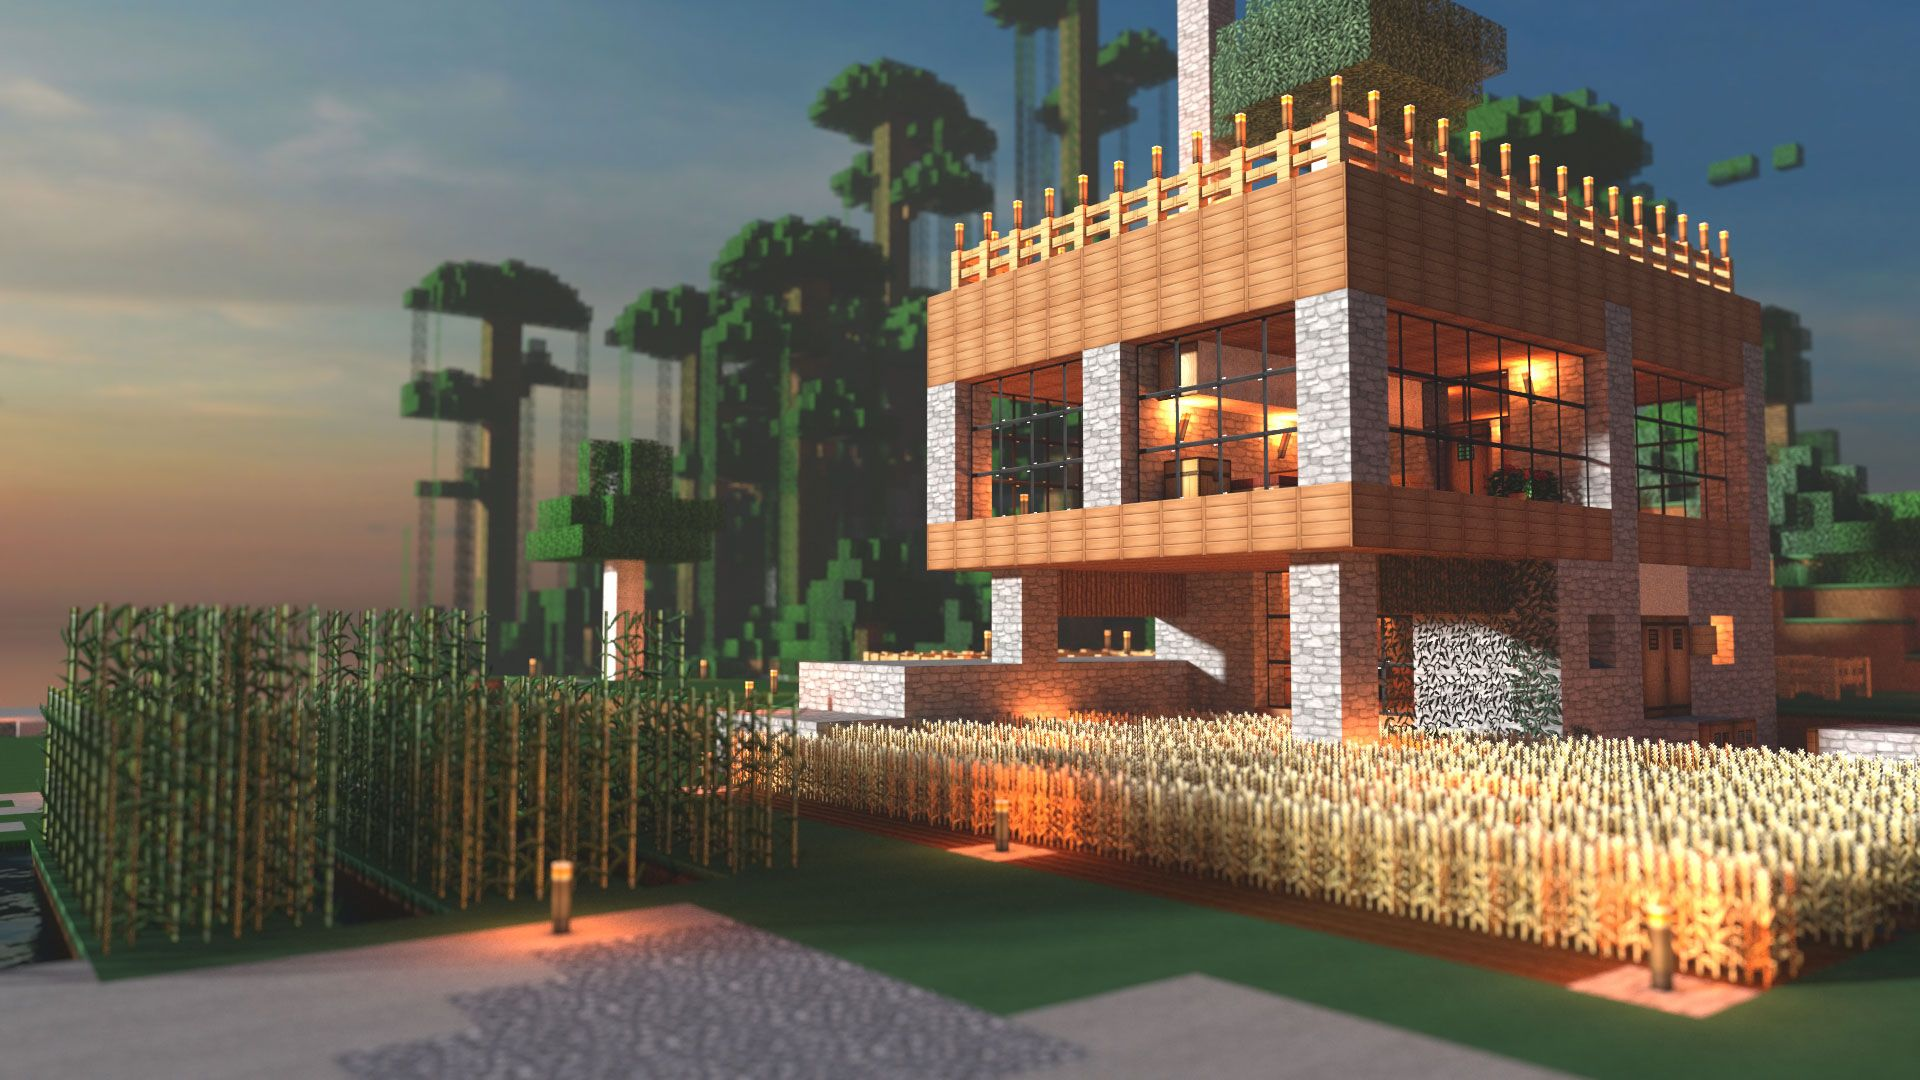 Modern Architecture House Minecraft modern farmhouse minecraft render | minecraft house | pinterest